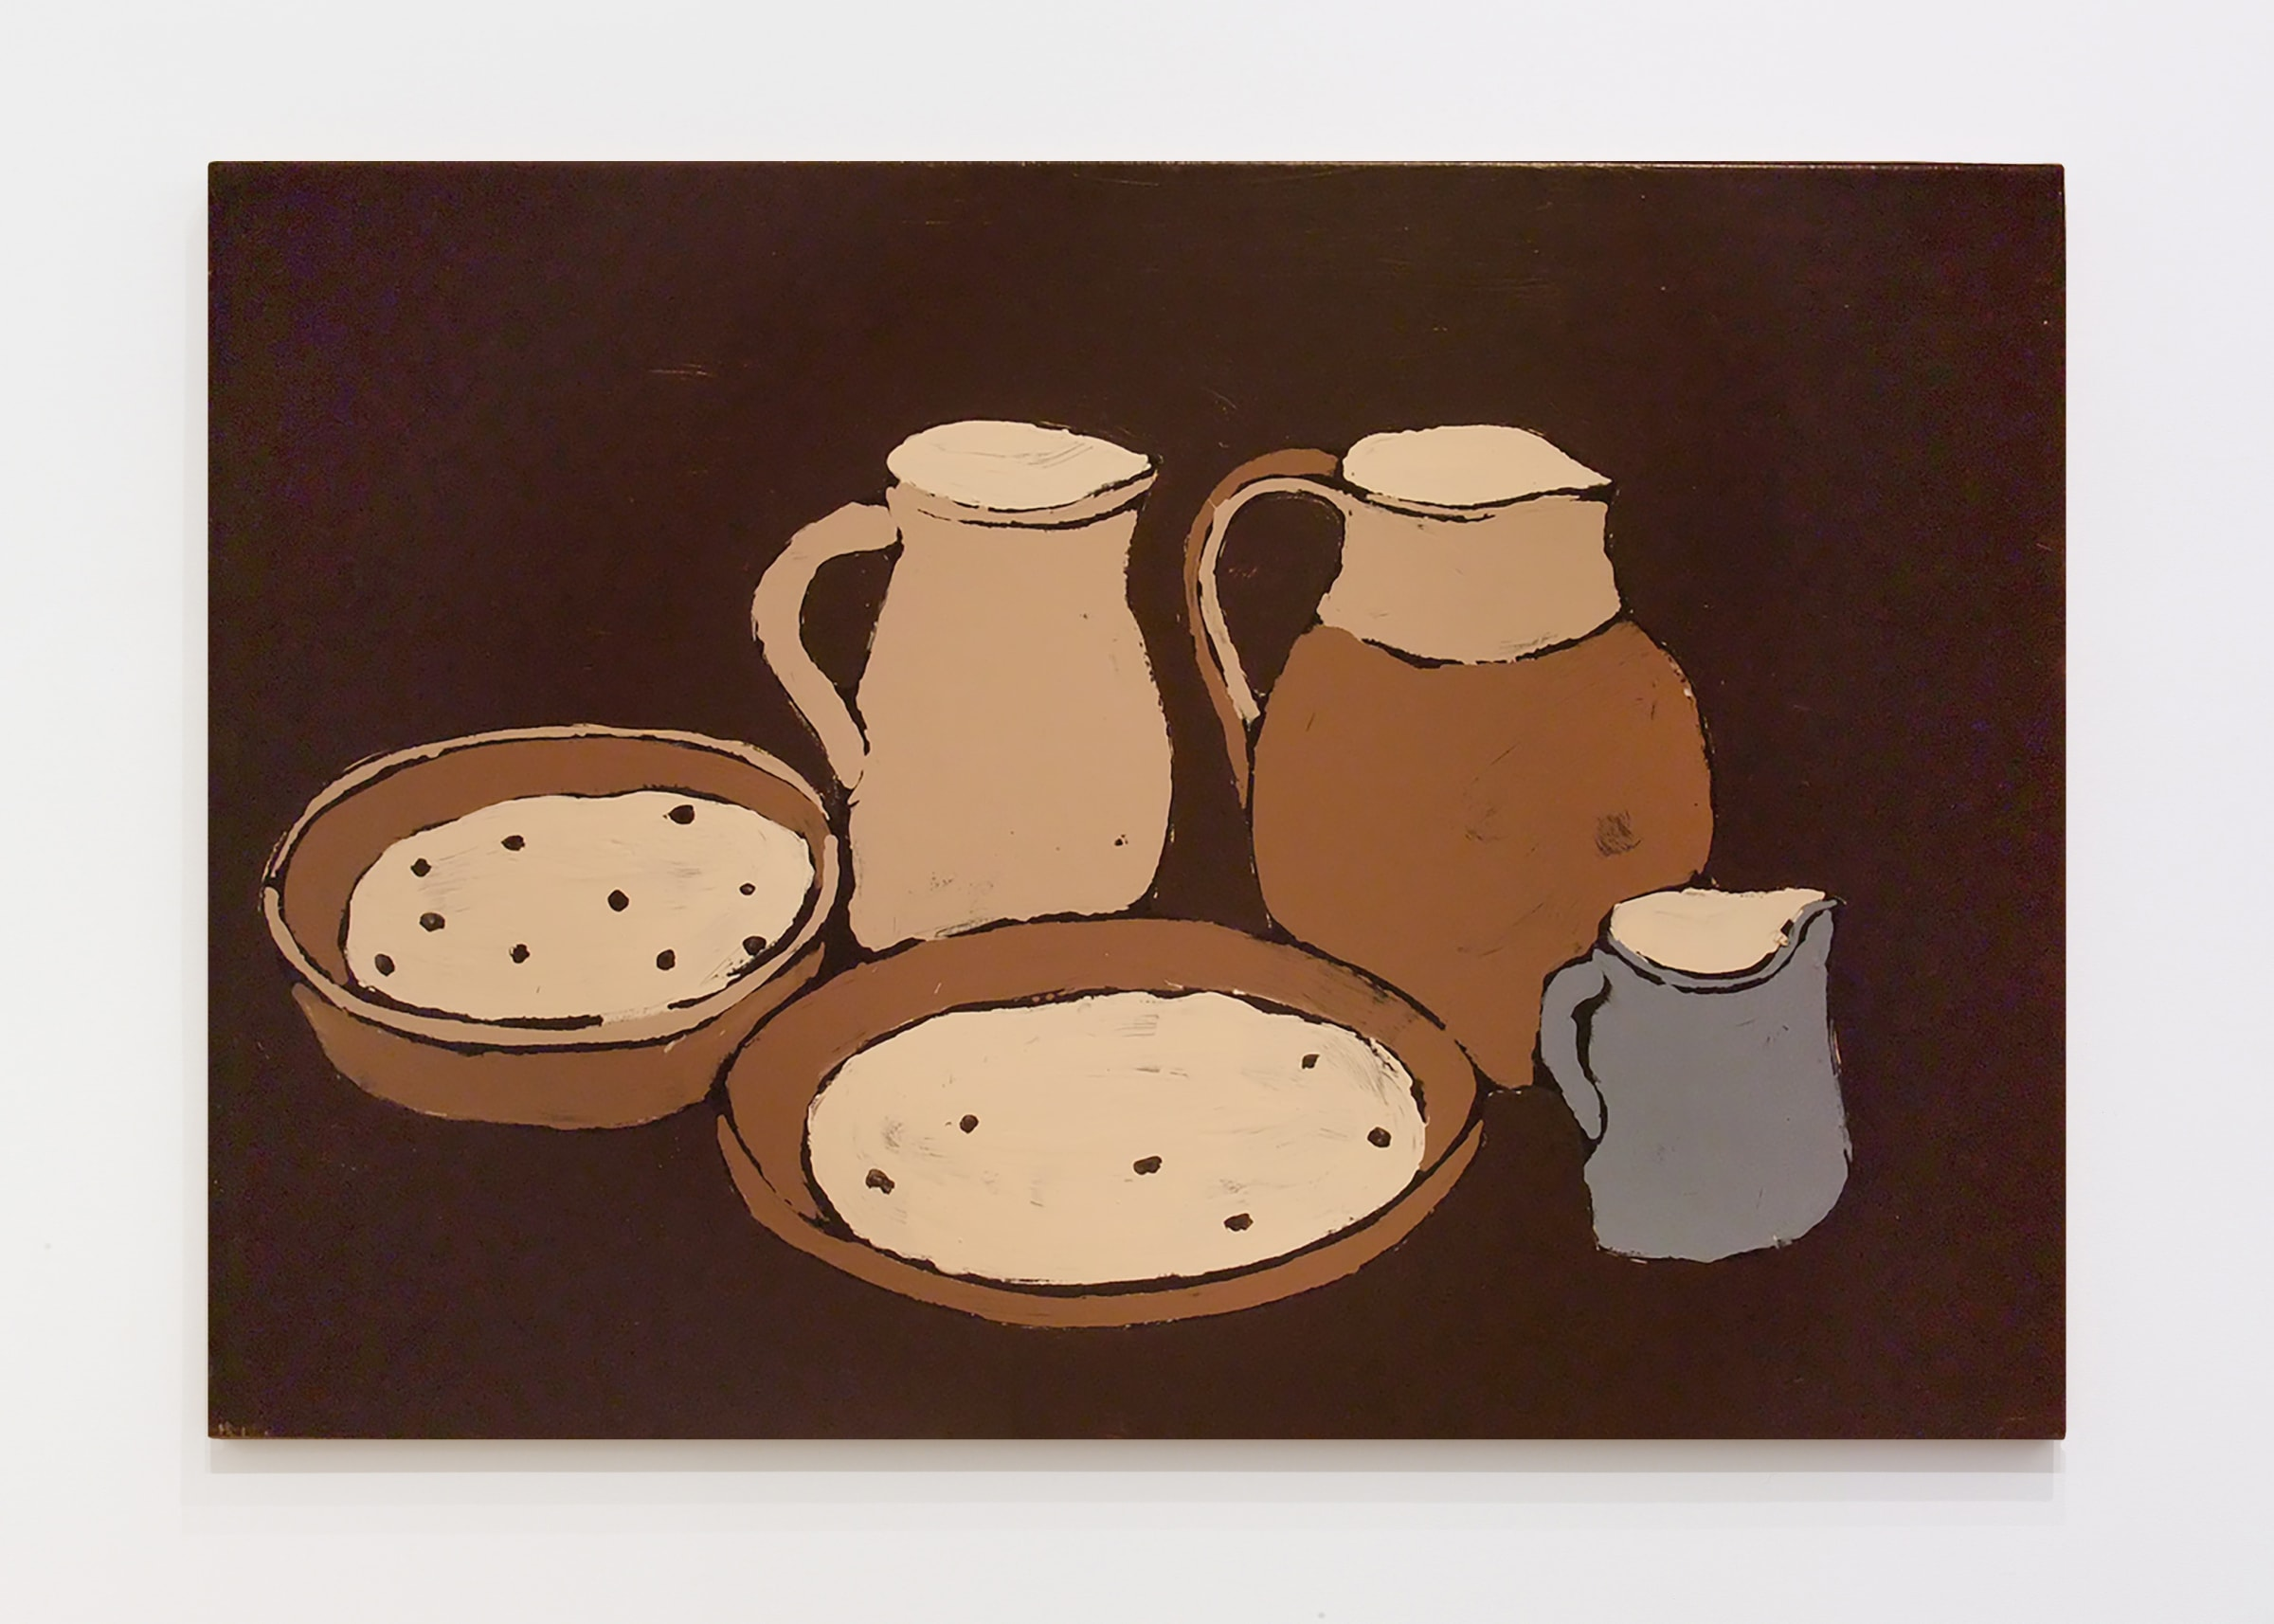 "<span class=""link fancybox-details-link""><a href=""/artists/242-fons-haagmans/works/11069-fons-haagmans-milk-and-porridge-2008/"">View Detail Page</a></span><div class=""artist""><span class=""artist""><strong>FONS HAAGMANS</strong></span></div>